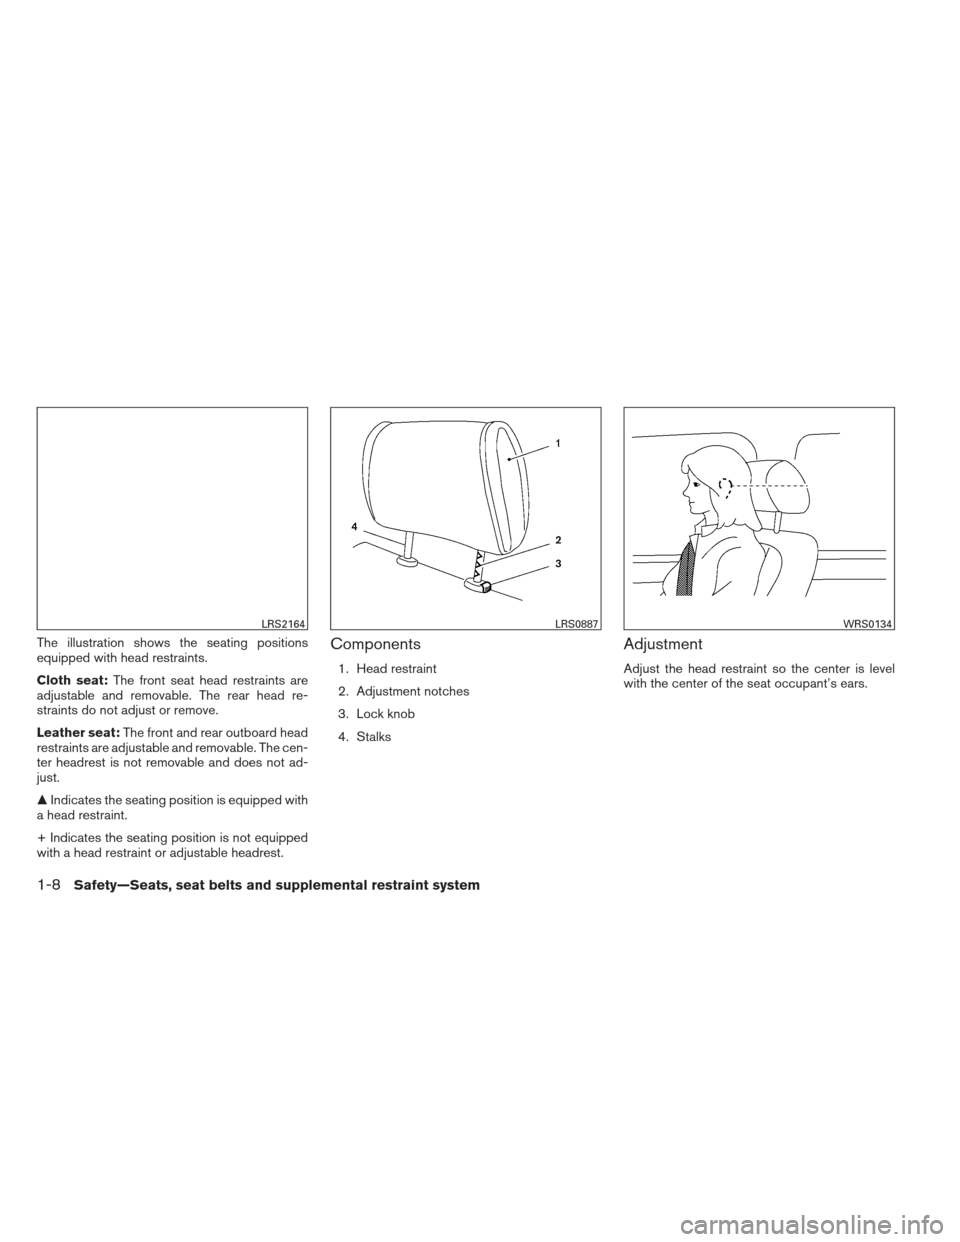 NISSAN ALTIMA 2013 L33 / 5.G Owners Manual The illustration shows the seating positions equipped with head restraints. Cloth seat:The front seat head restraints are adjustable and removable. The rear head re- straints do not adjust or remove.